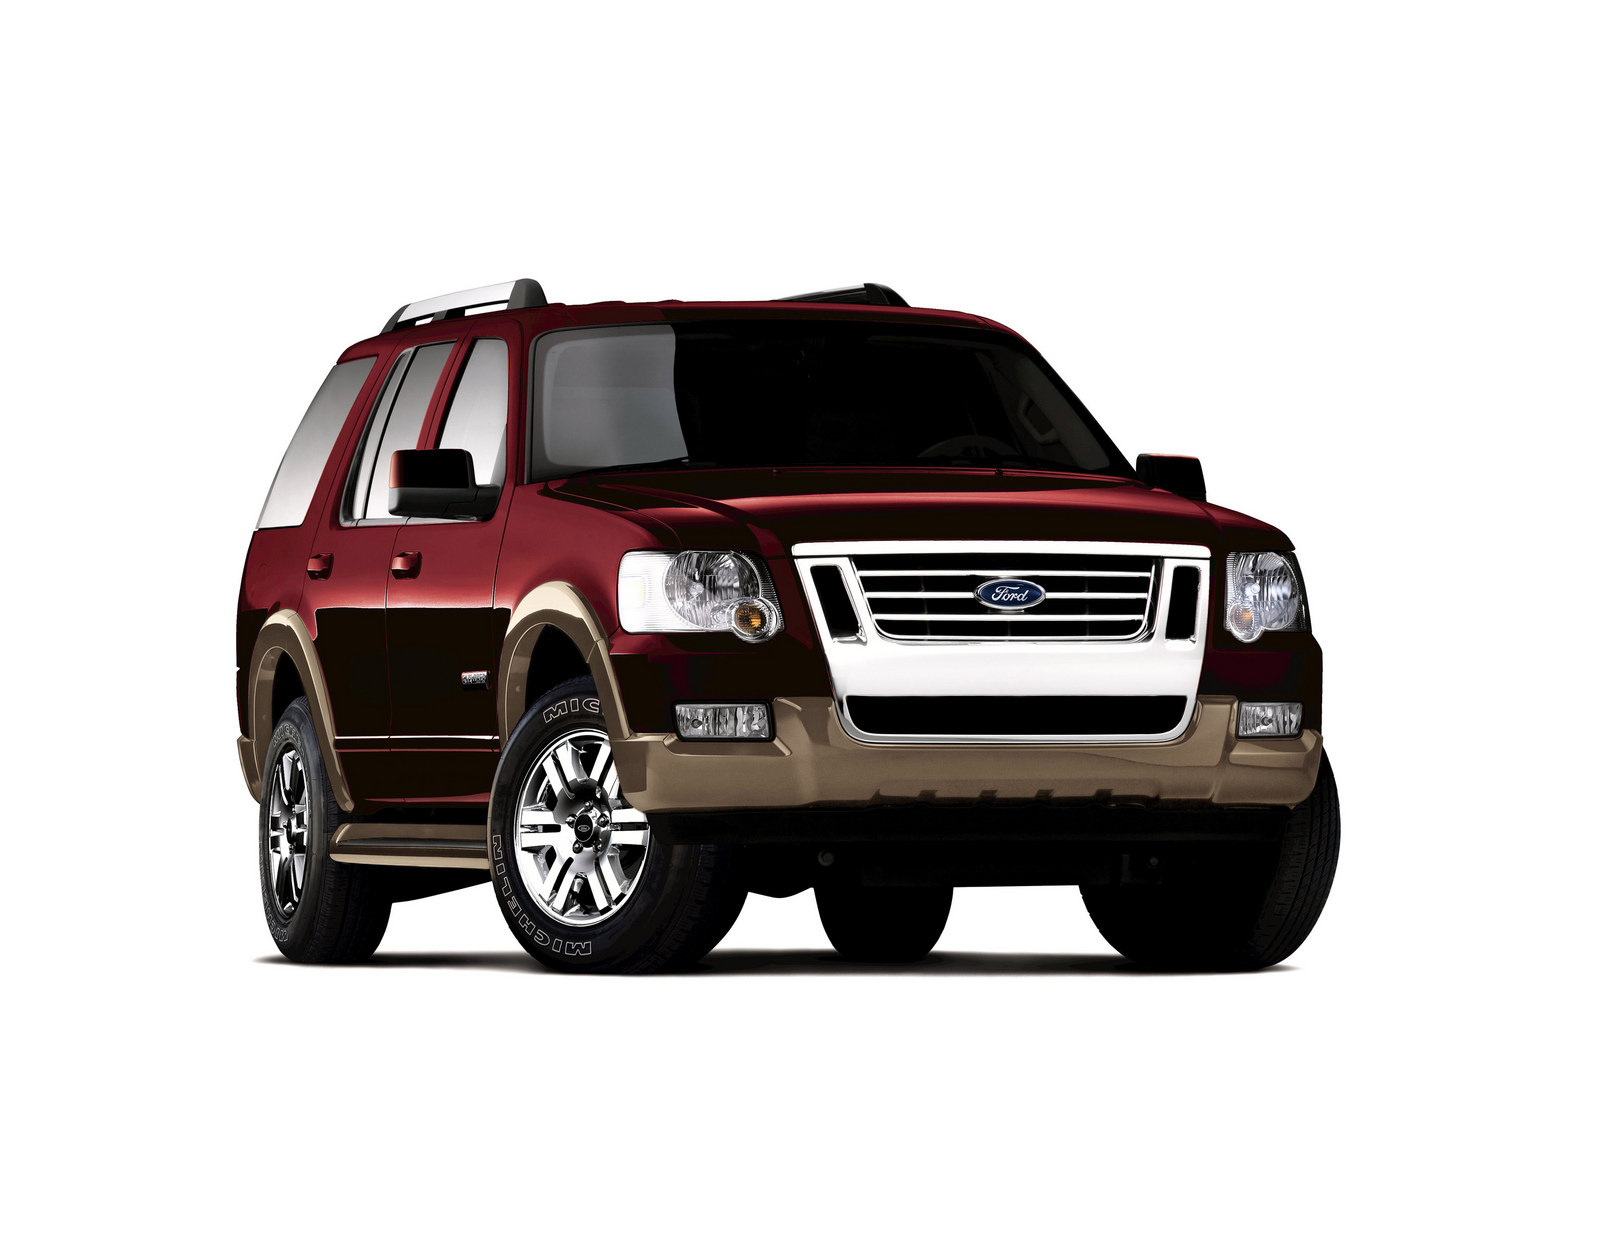 2006 Ford Explorer Xlt >> 2007 Ford Explorer Review - Top Speed